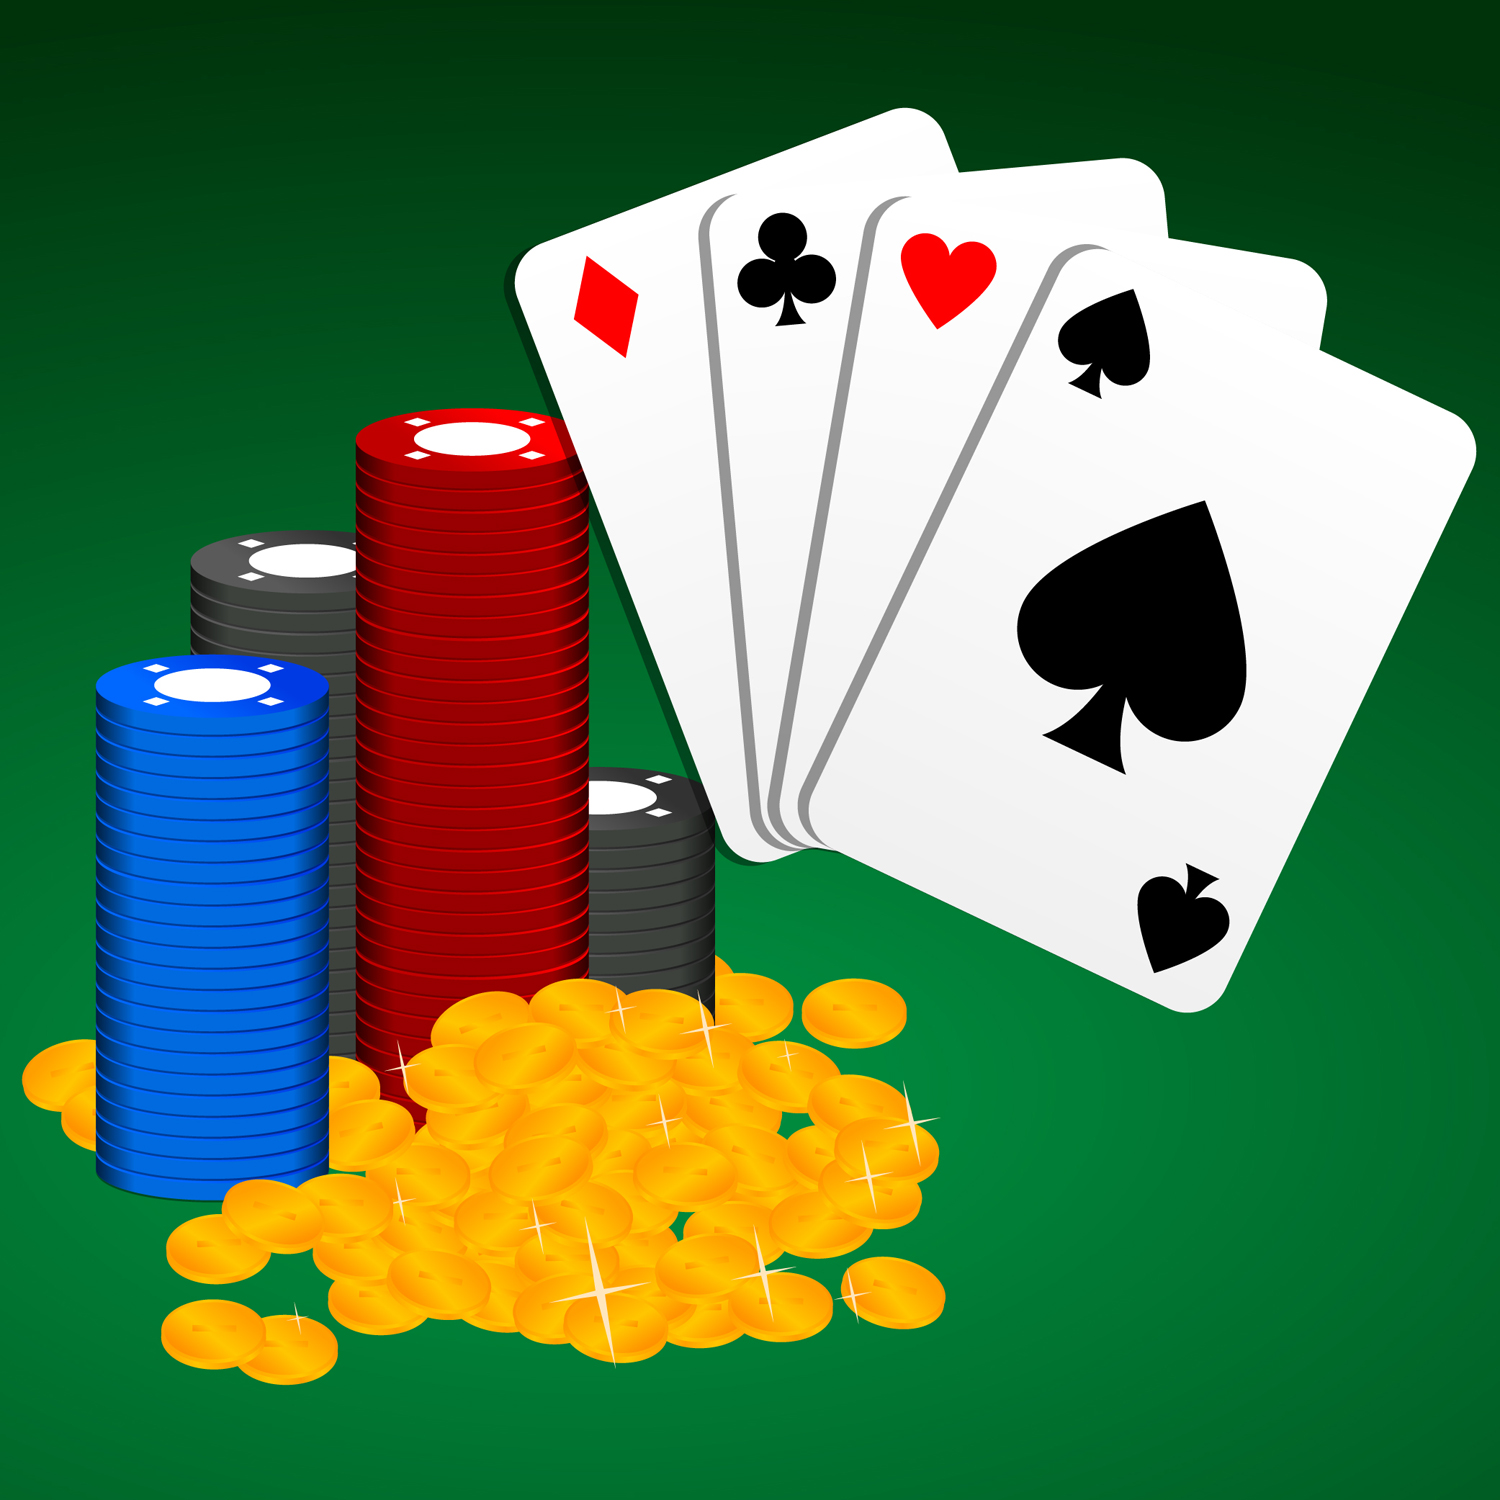 Casino Chips Clipart.